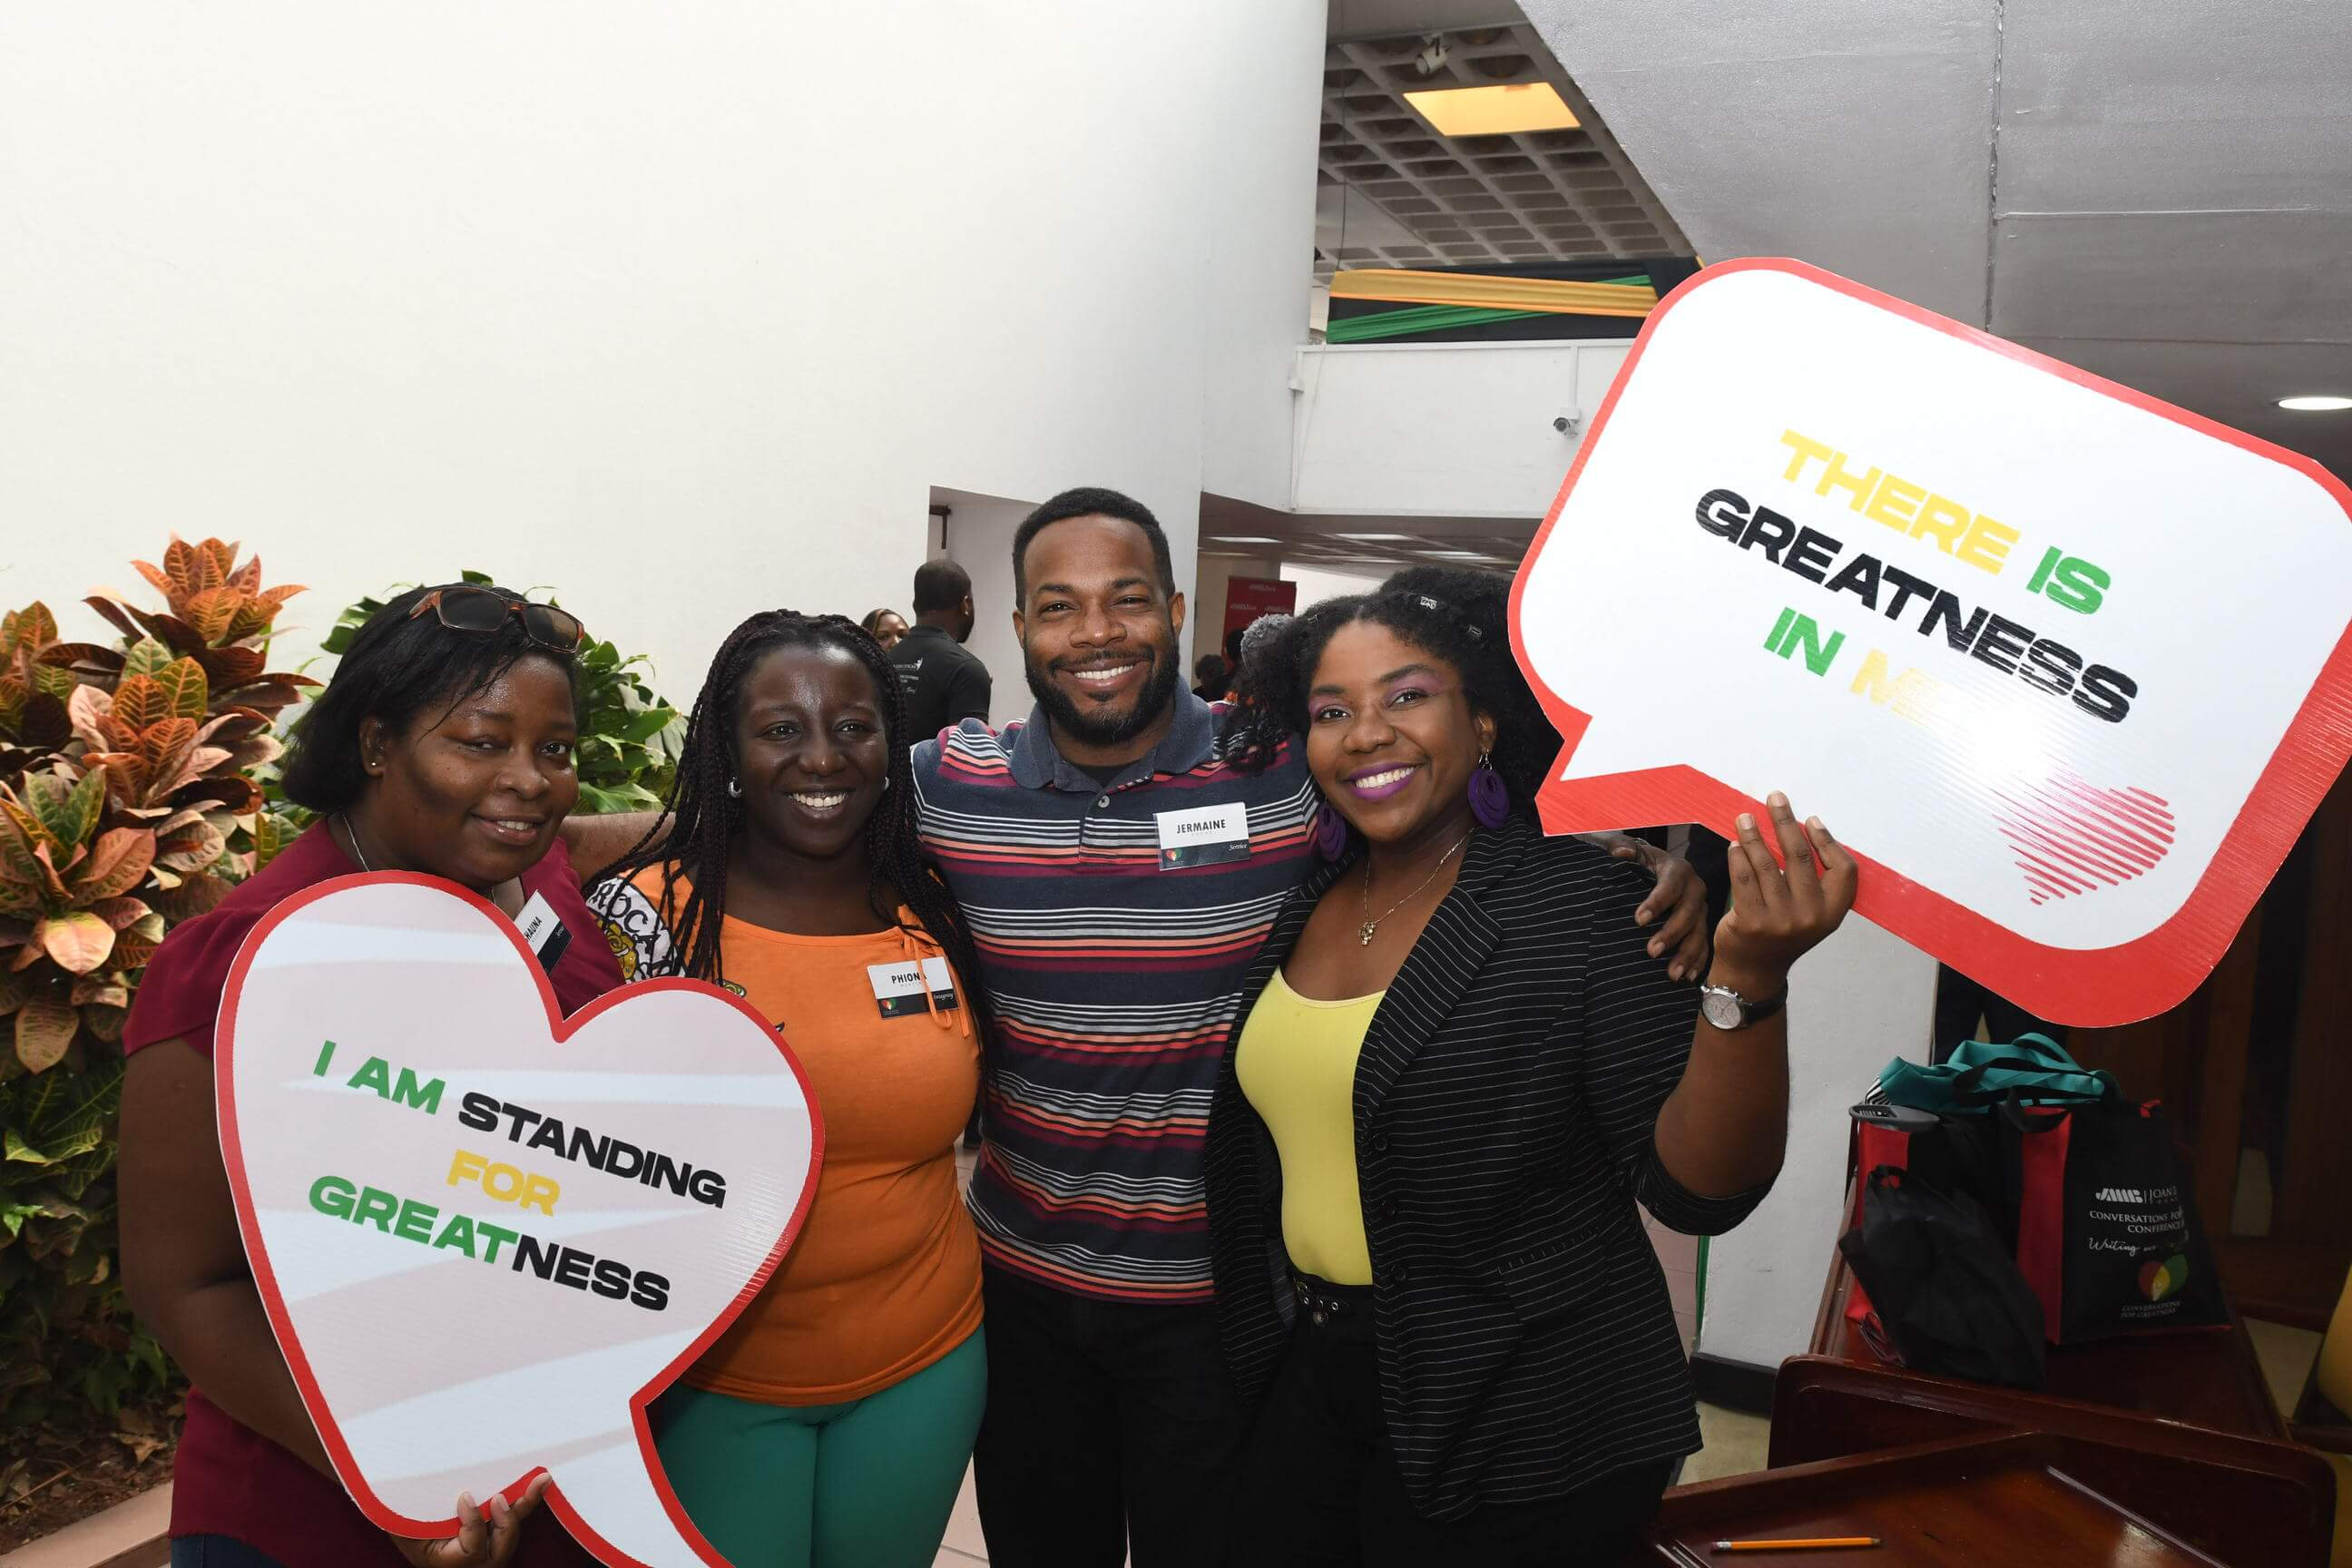 JMMB Joan Duncan Foundation conference participants 'standing for greatness'